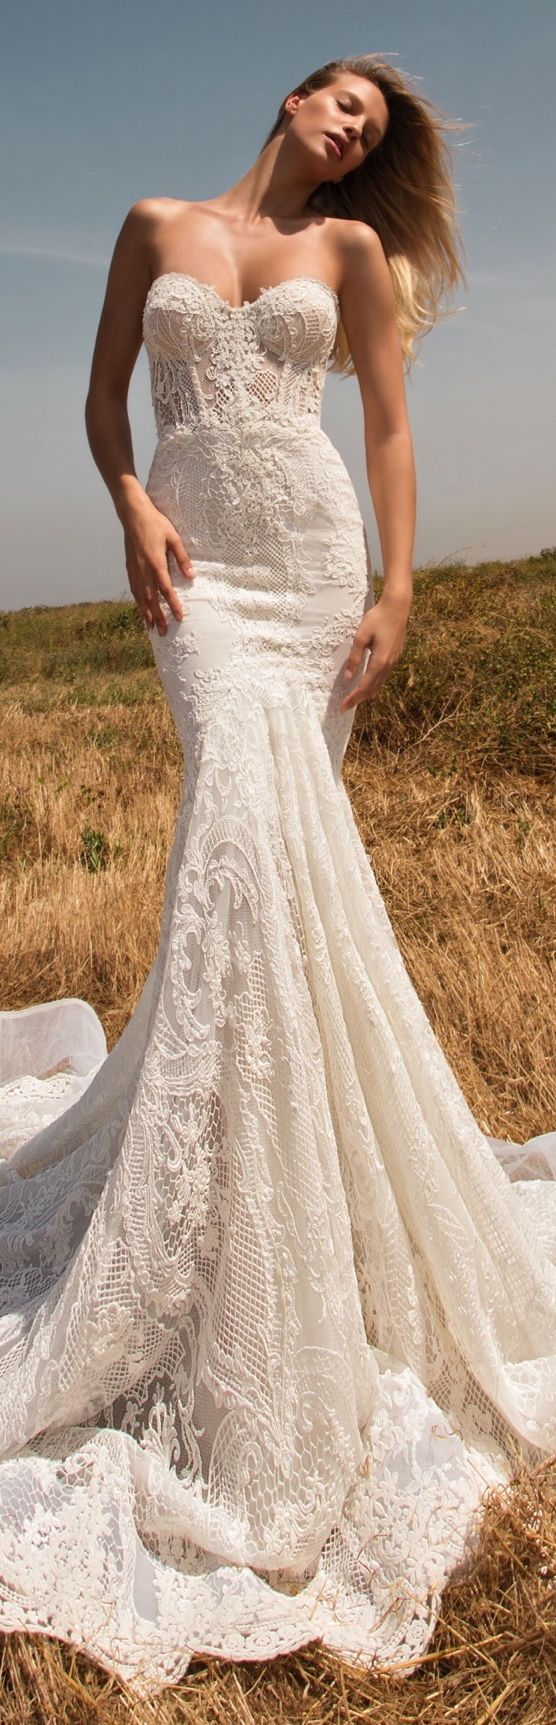 Best 25 tight skirts ideas on pinterest bodycon ideas for Tight fitted mermaid wedding dresses